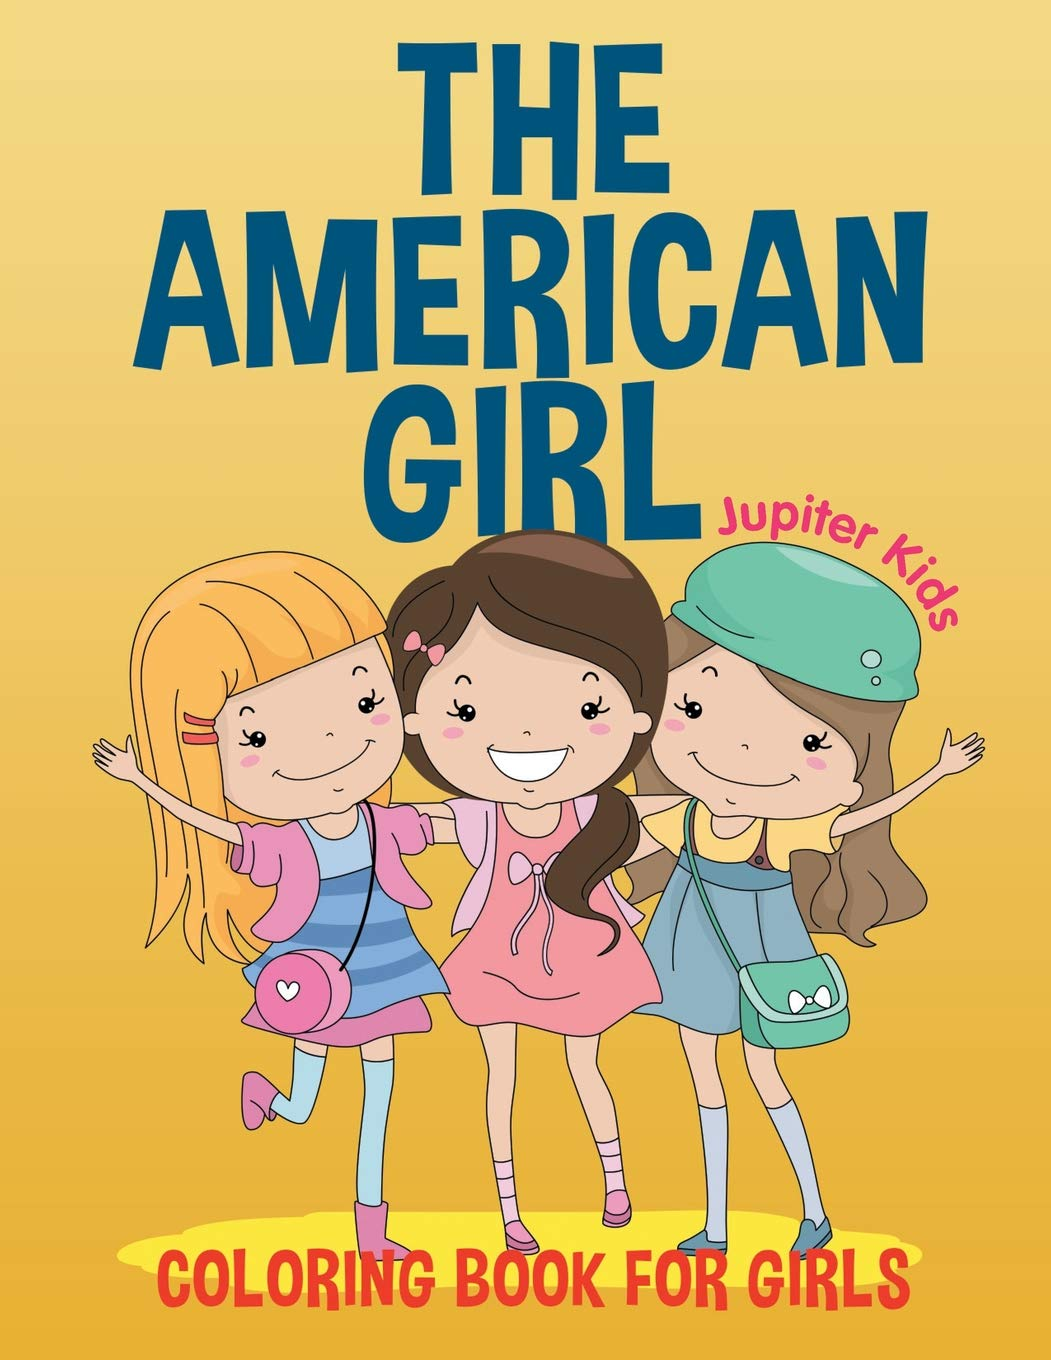 The American Girl Coloring Book For Girls Jupiter Kids